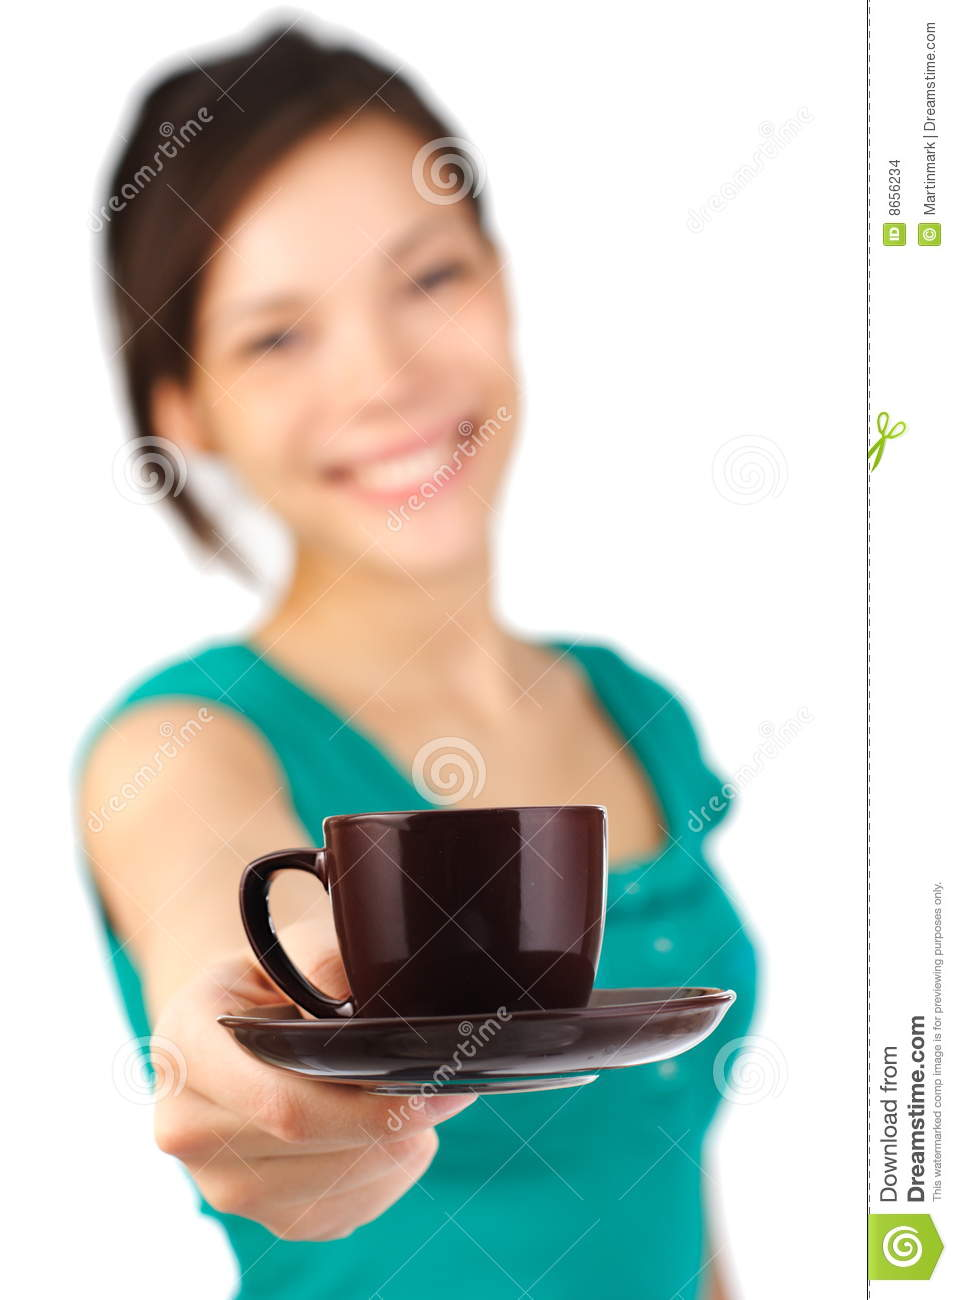 waitress serving coffee stock images  image  - waitress serving coffee